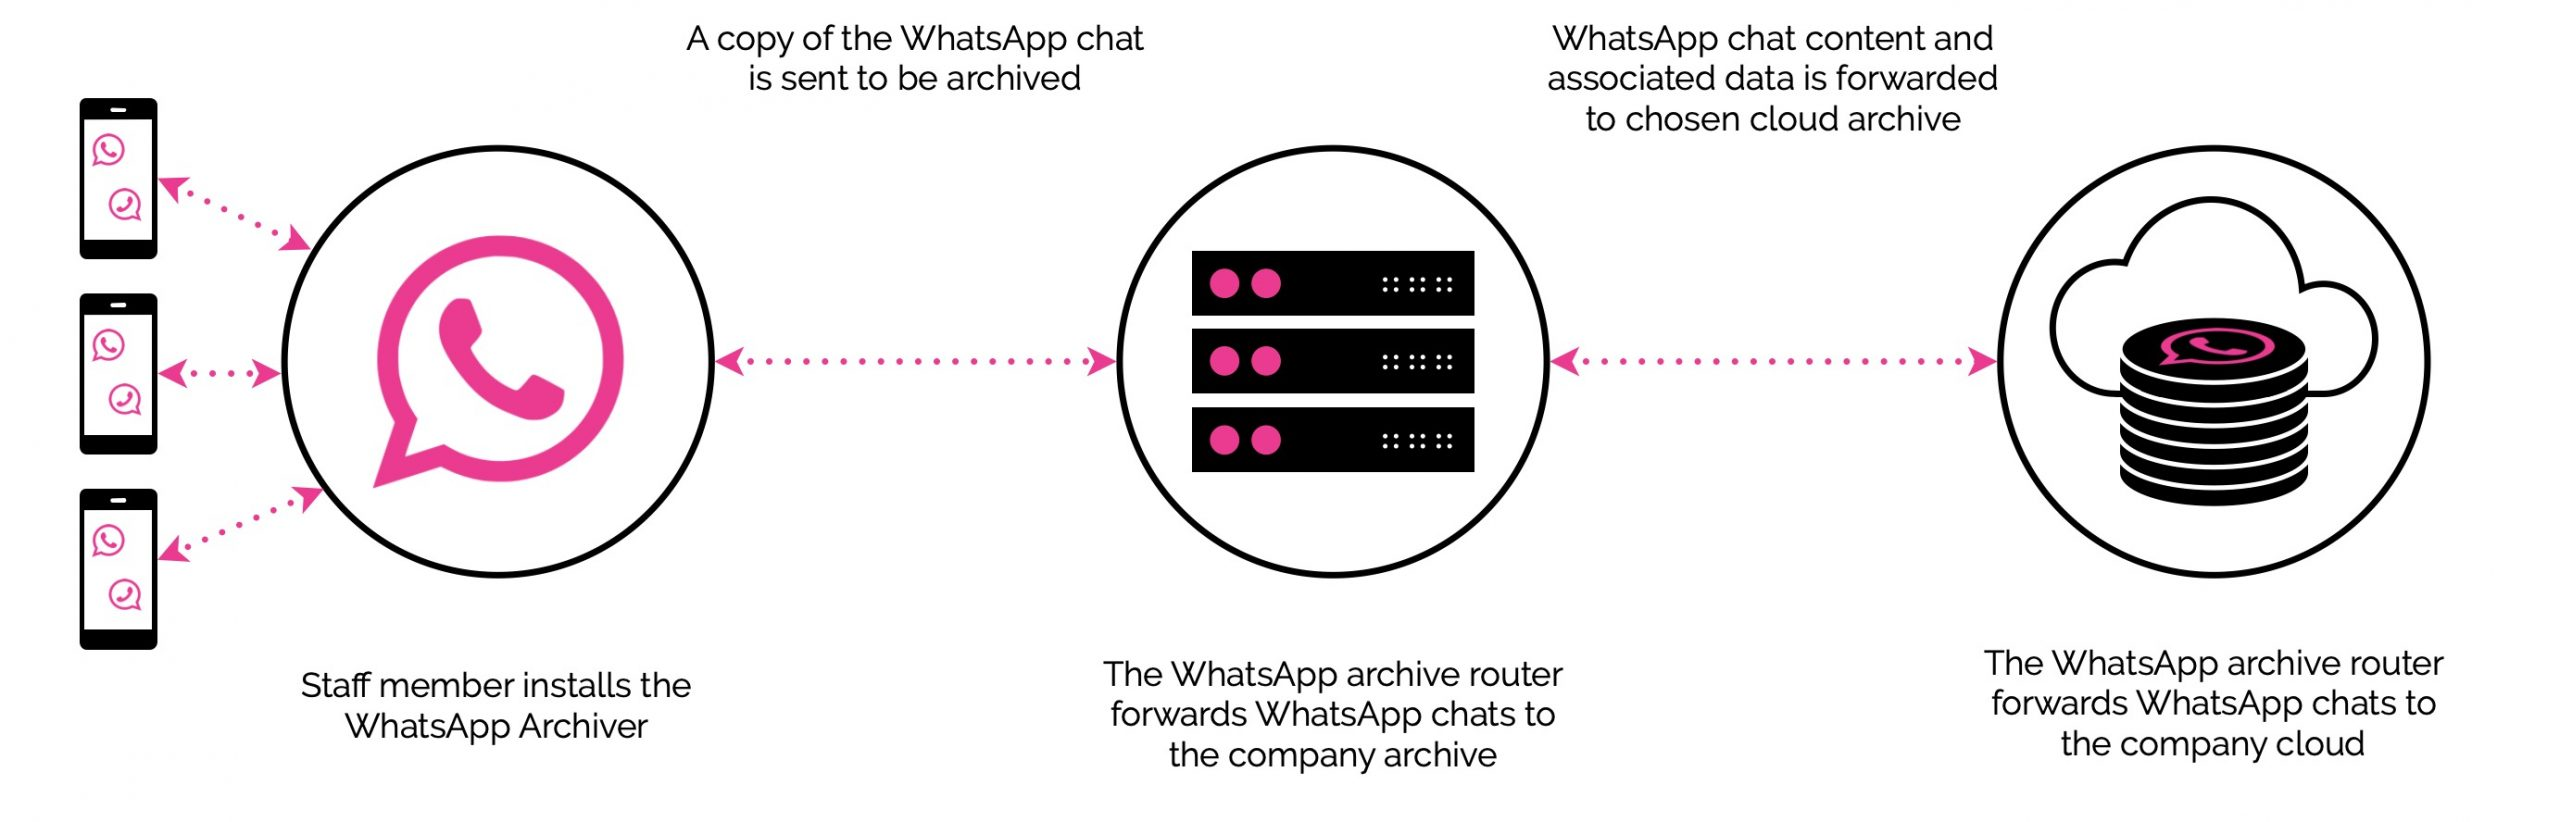 MiFID Compliant WhatsApp Archiver software